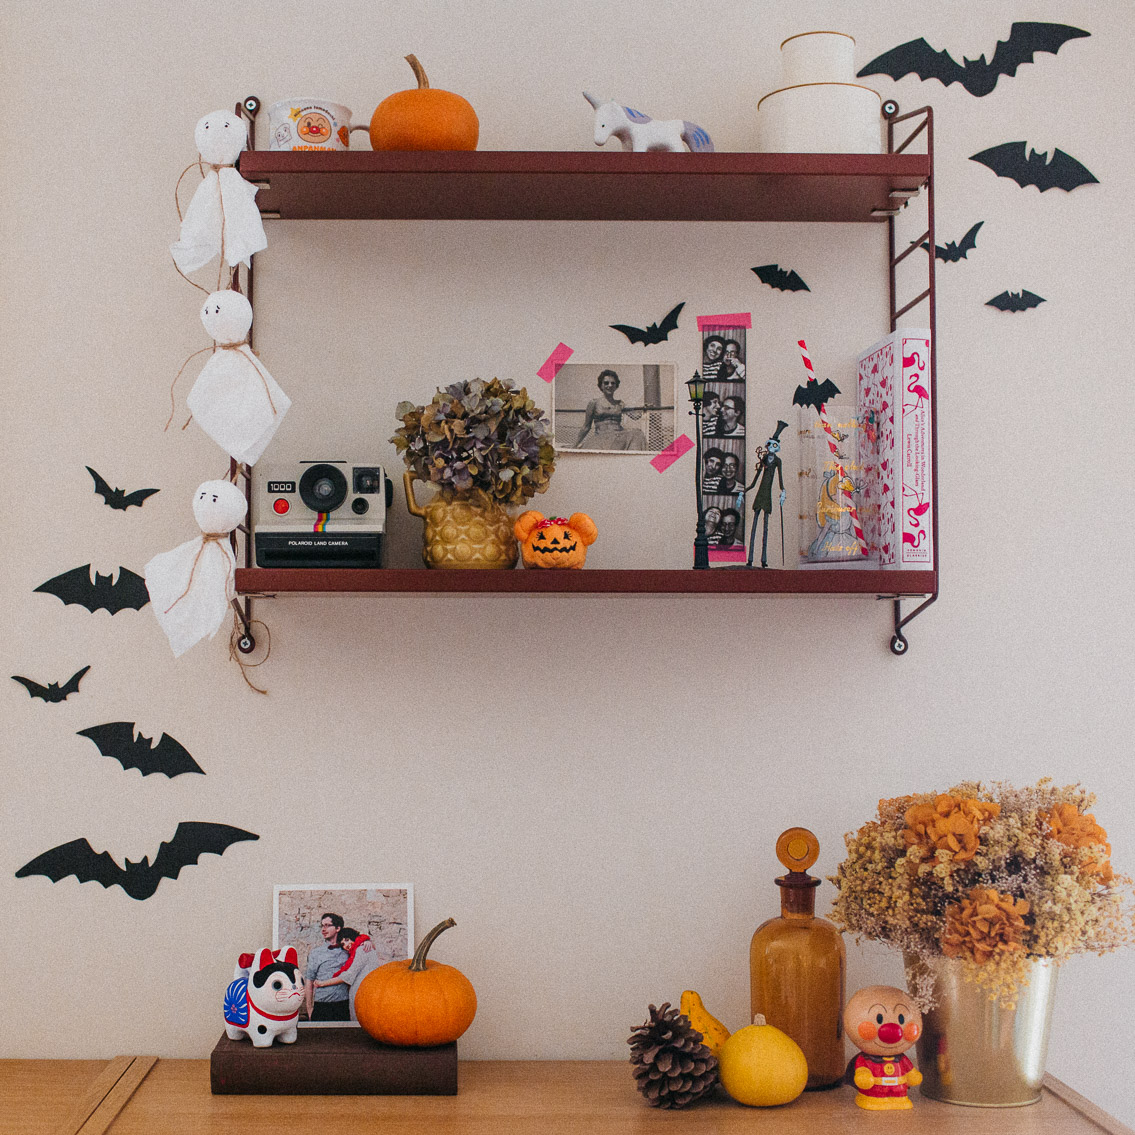 Halloween 2019 home decor - The cat, you and us